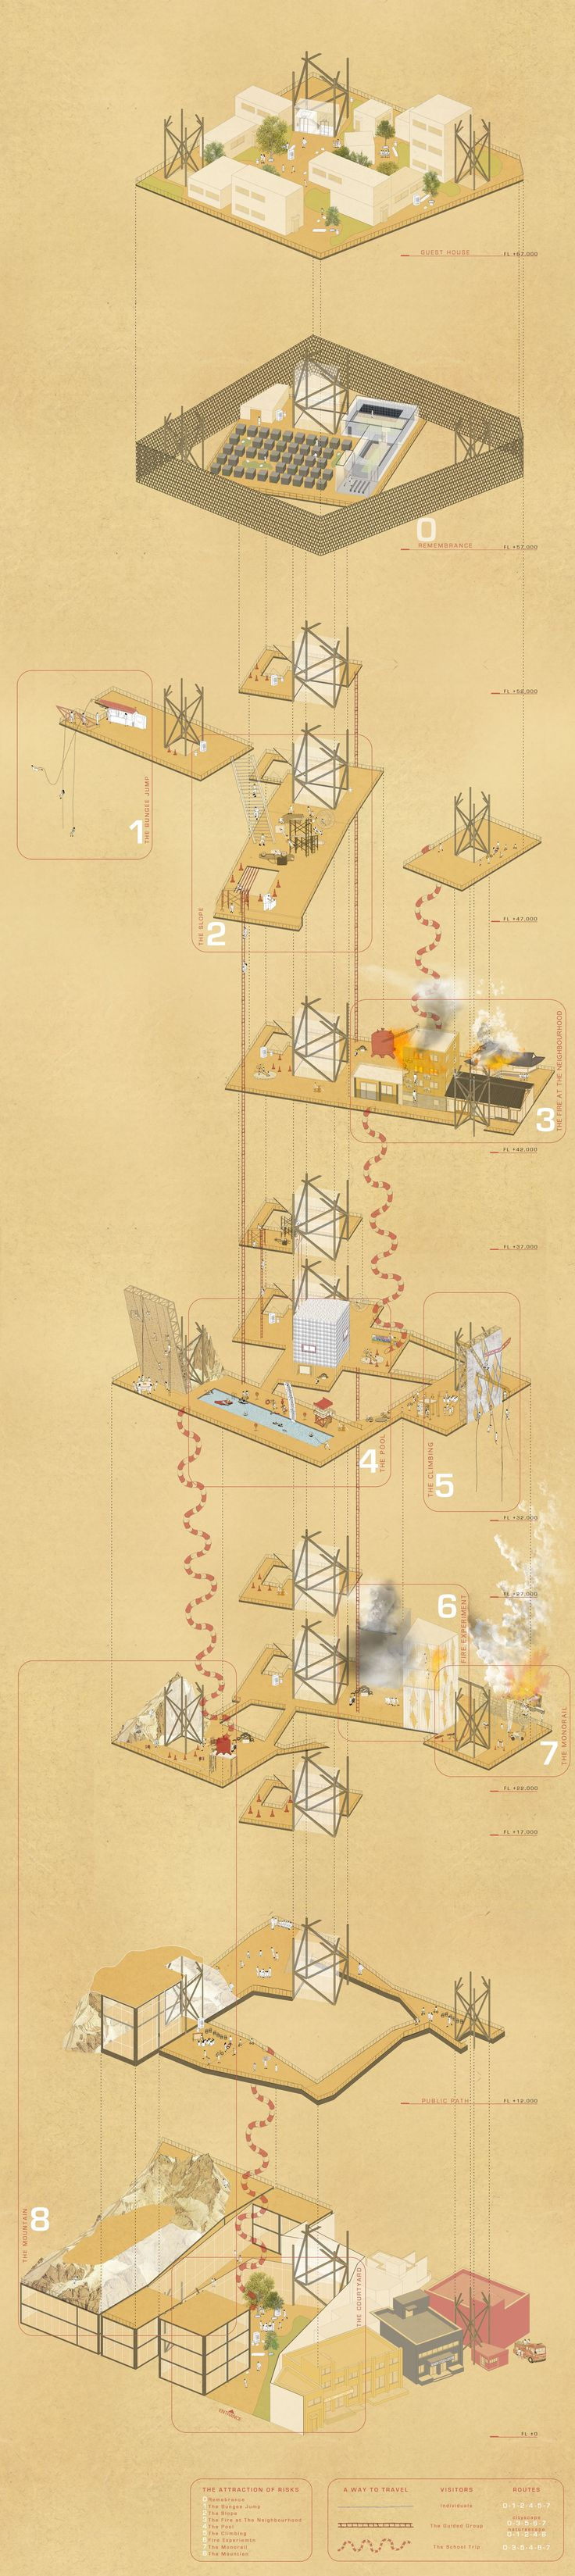 Find This Pin And More On Exploded Axonometric Architectural Drawing